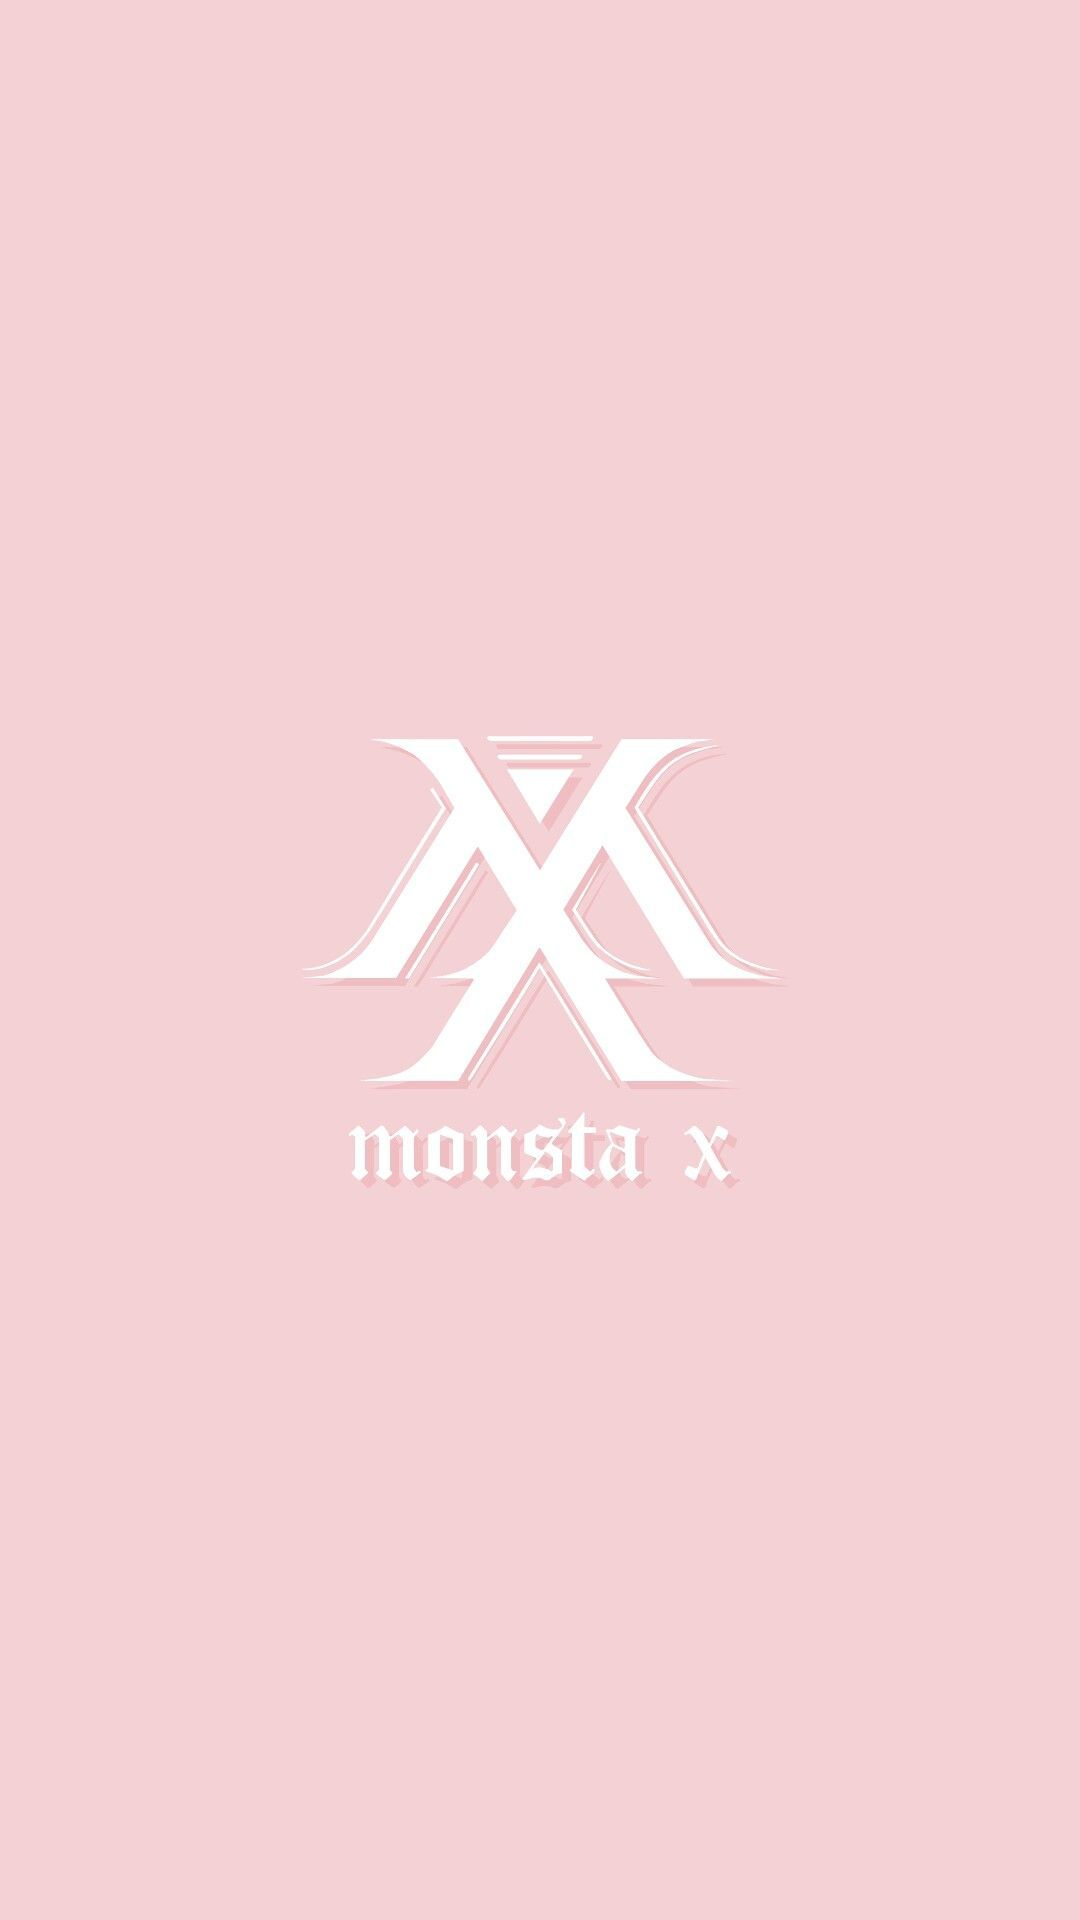 Image Result For Monsta X Logo Wallpaper Monsta X Wallpaper Pink Wallpaper Iphone